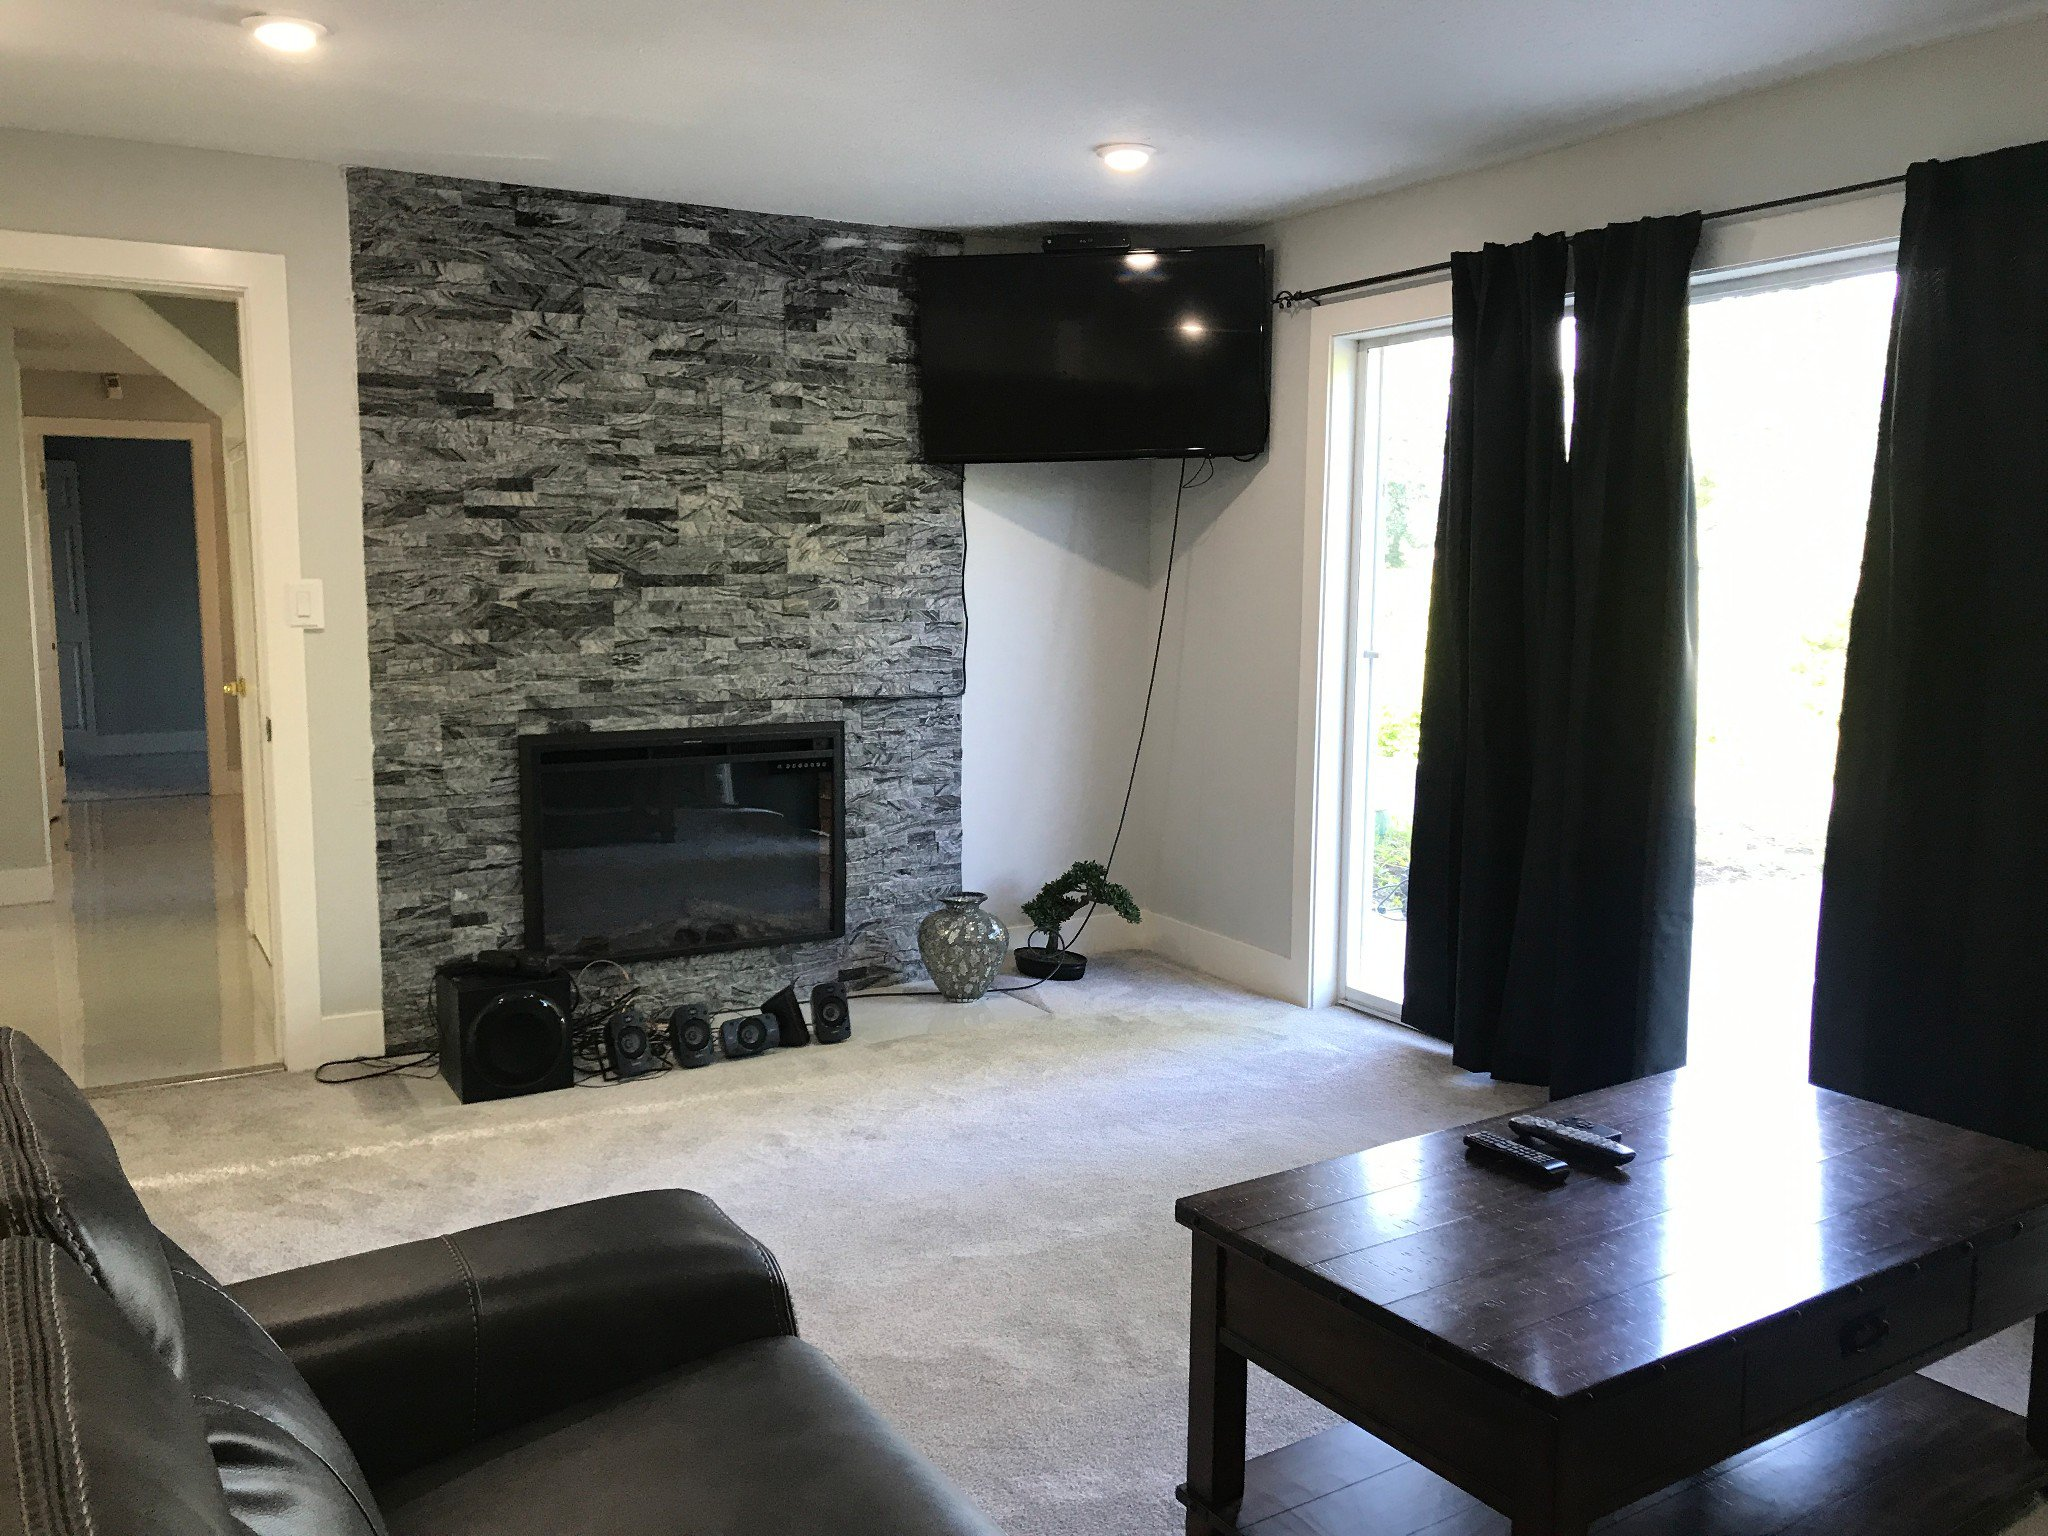 Photo 15: Photos: 34694 Dewdney Trunk Rd. in Mission: House for rent